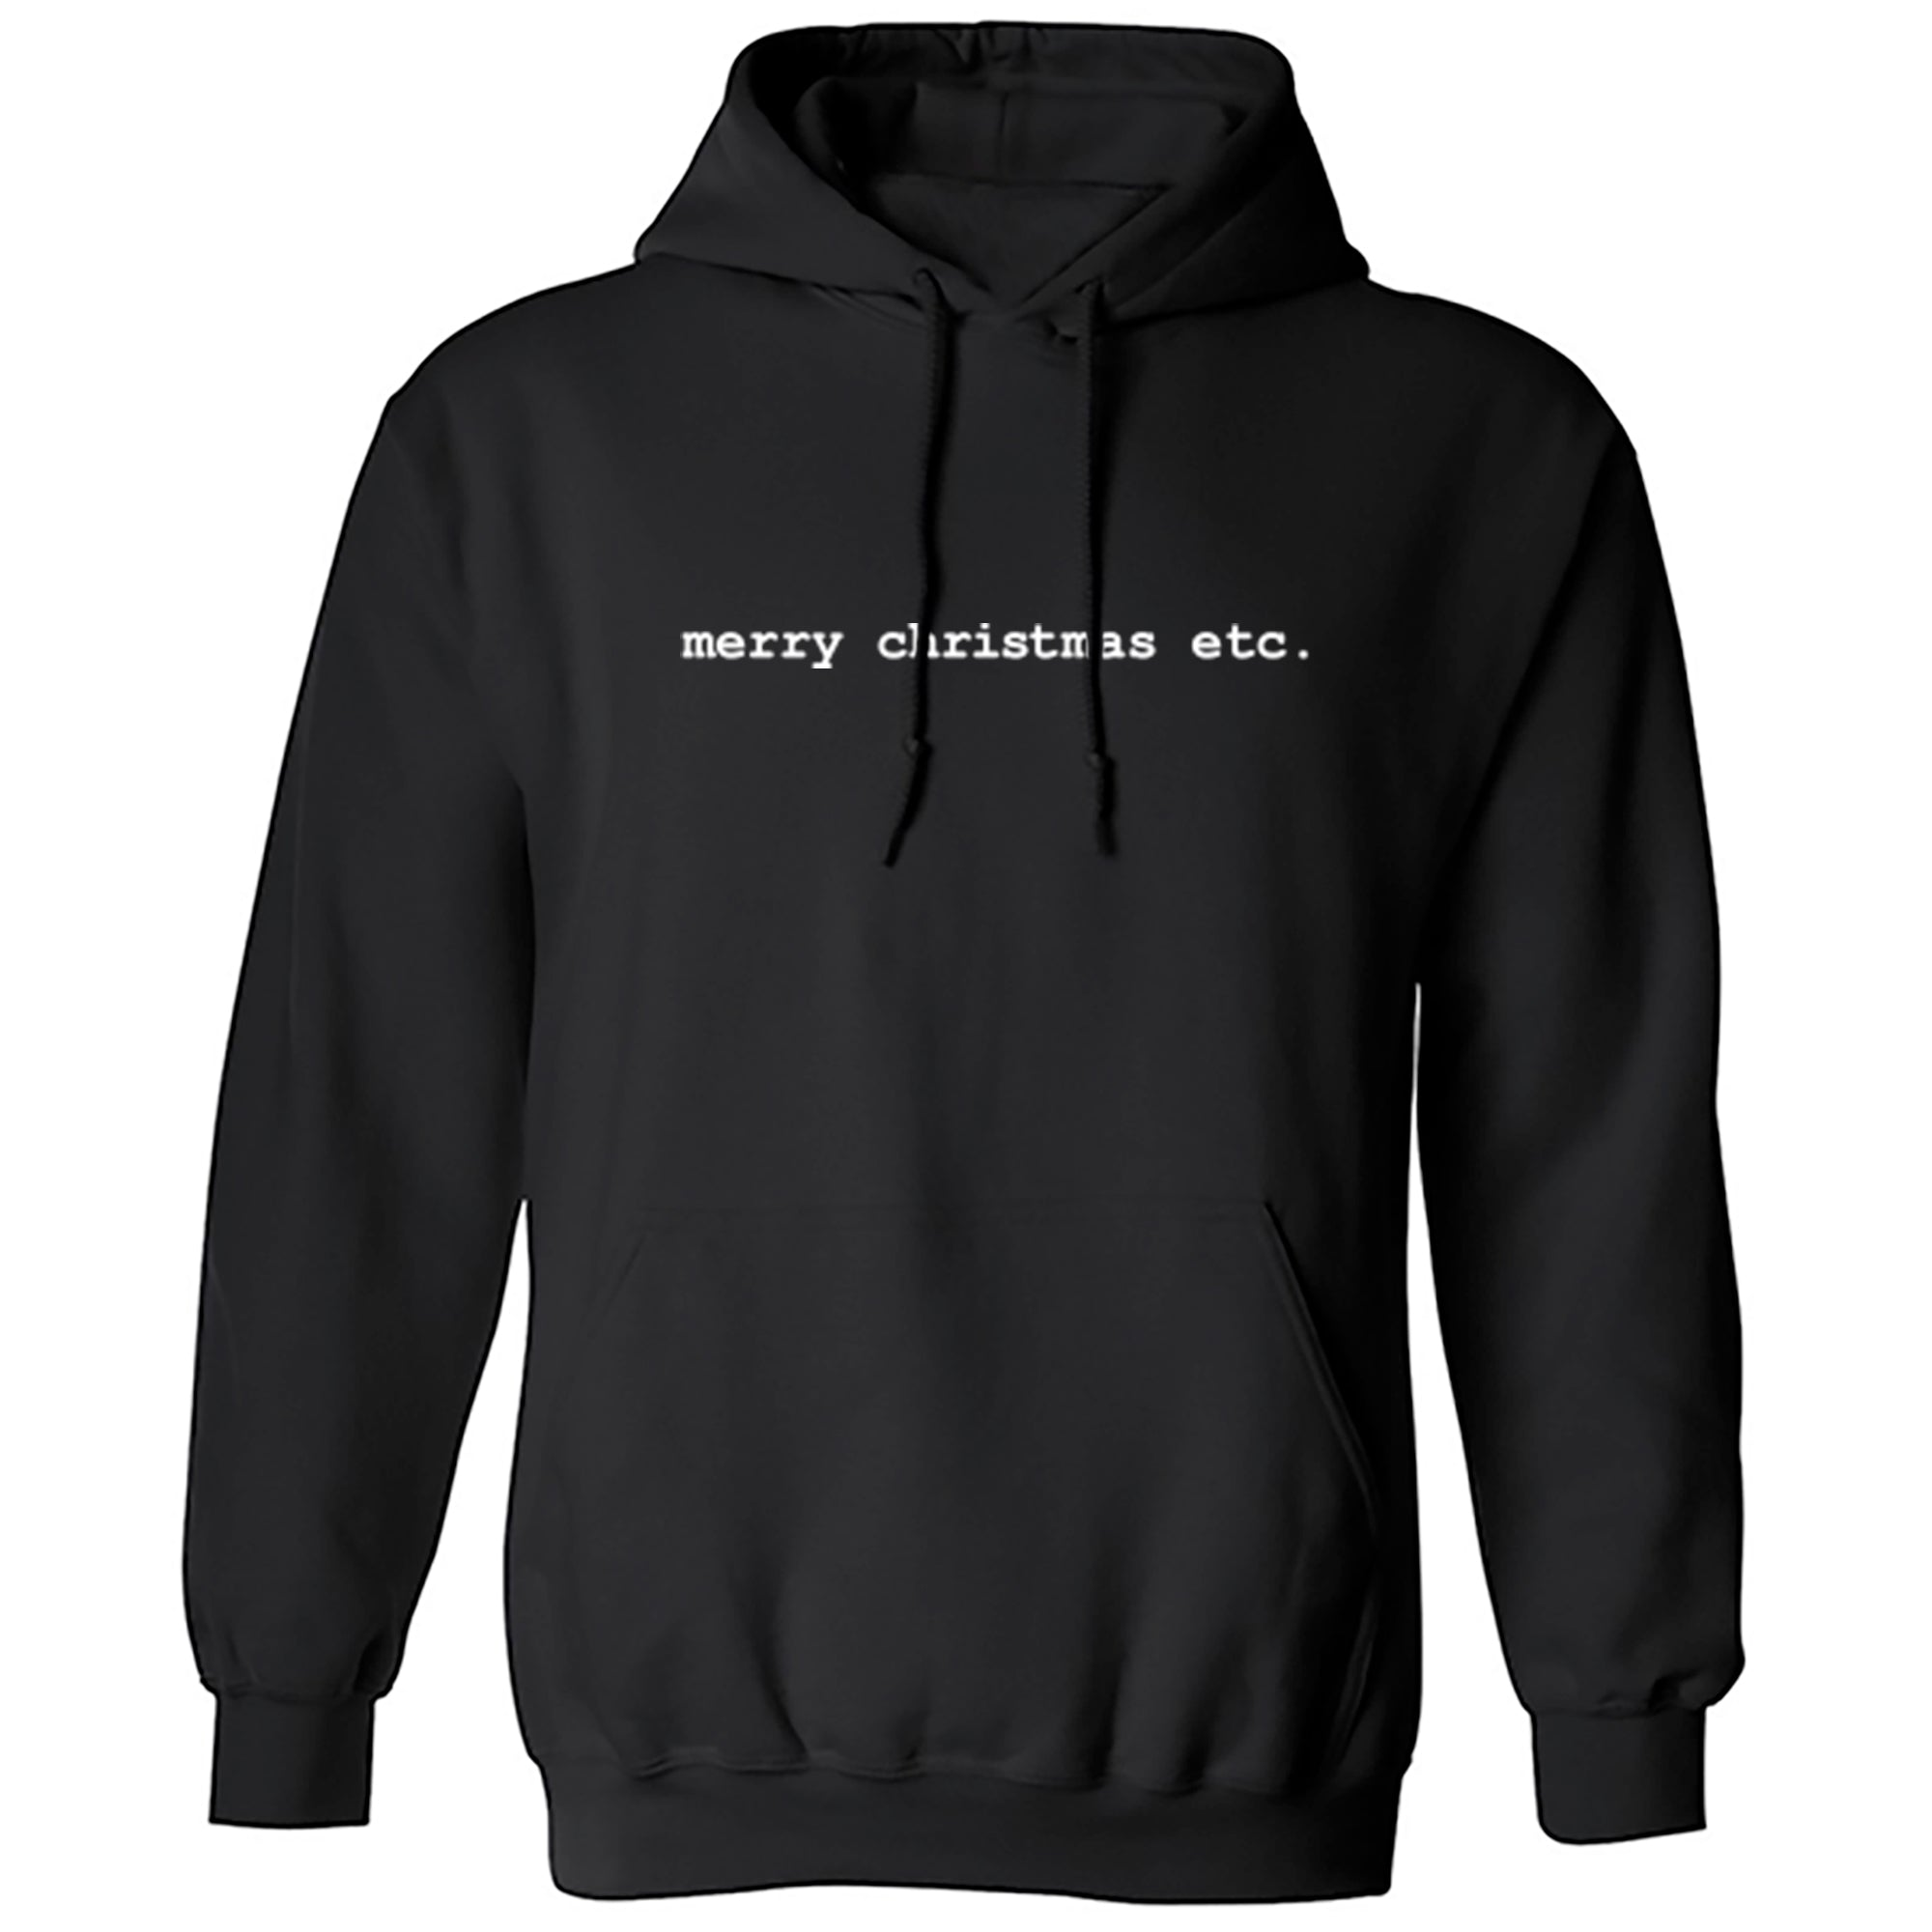 Merry Christmas Etc. Unisex Hoodie A0050